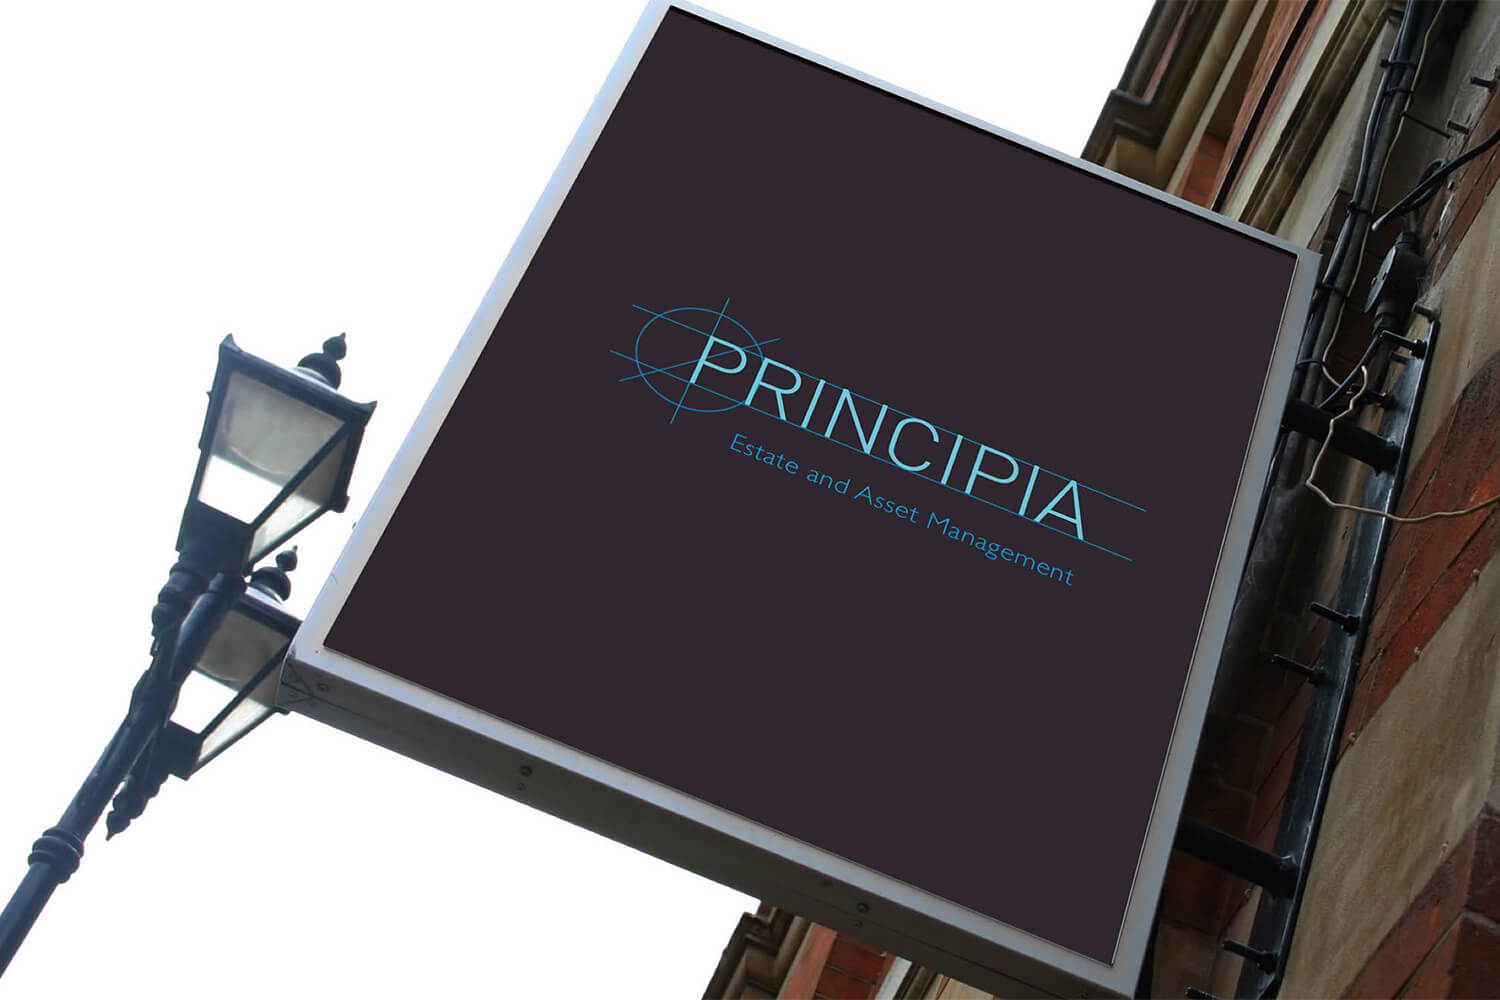 A mockup of the design for a sign to be erected outside the Principia offices